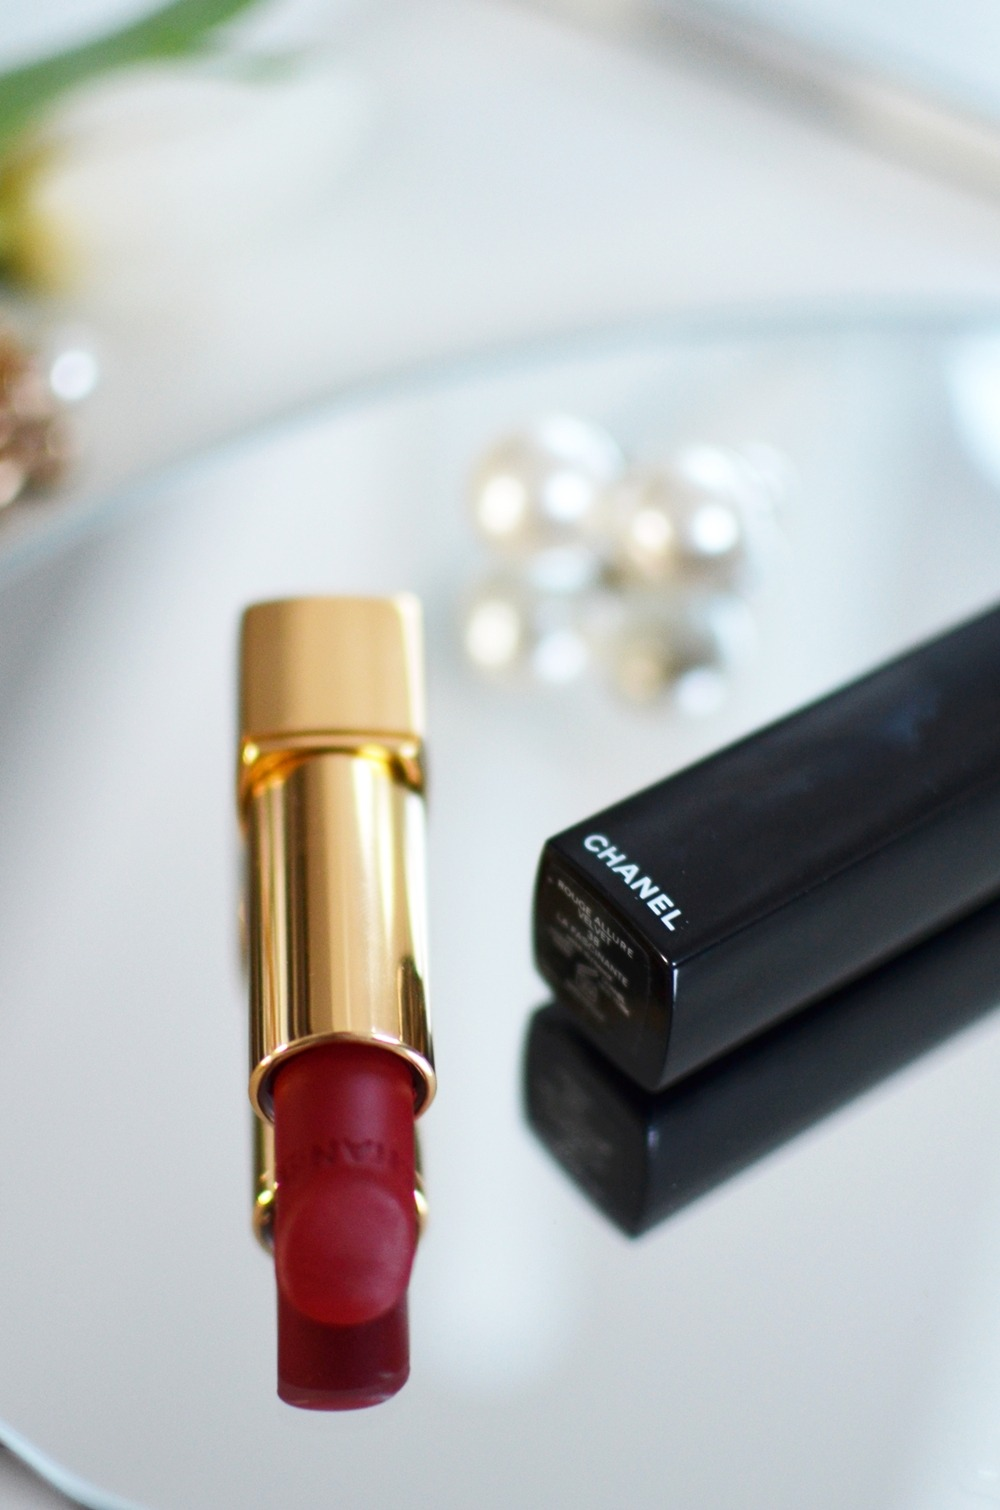 valentinstag-lippenstift-chanel-dior-double-pearl-valentines-day-2015 (5)-teaser1